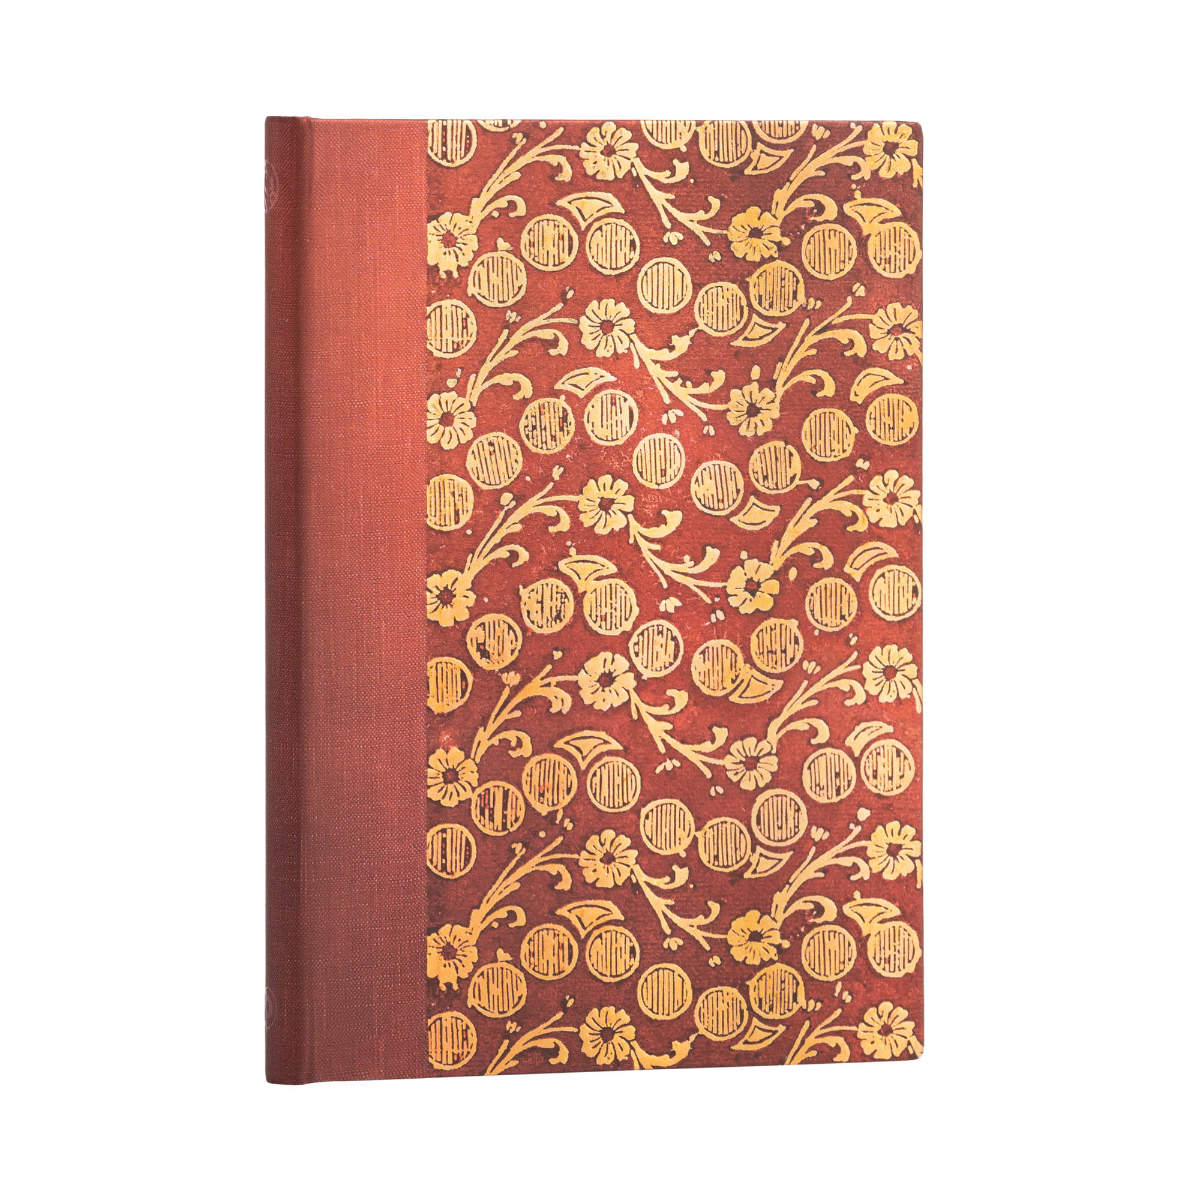 Paperblanks Virginia Woolf's The Waves Midi 5x7 Inch Notebook